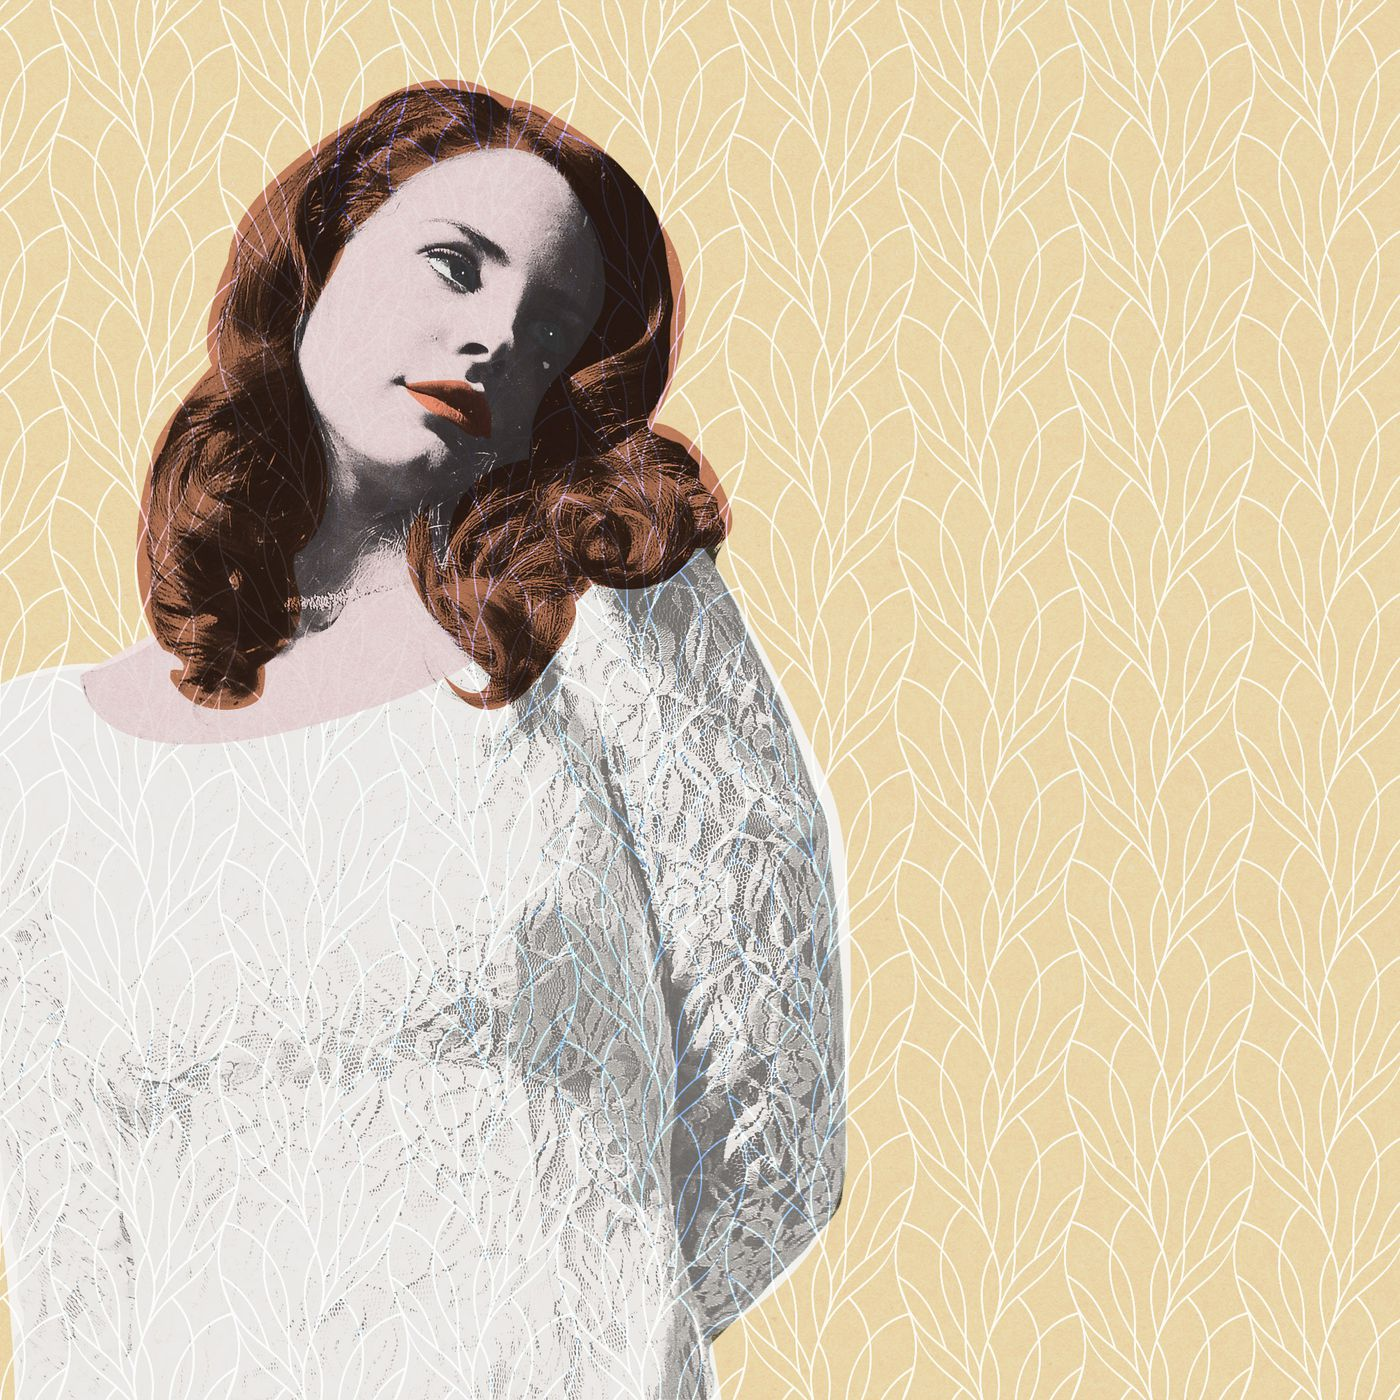 Lana Del Rey S Born To Die And Snl Performance Revisited The Ringer